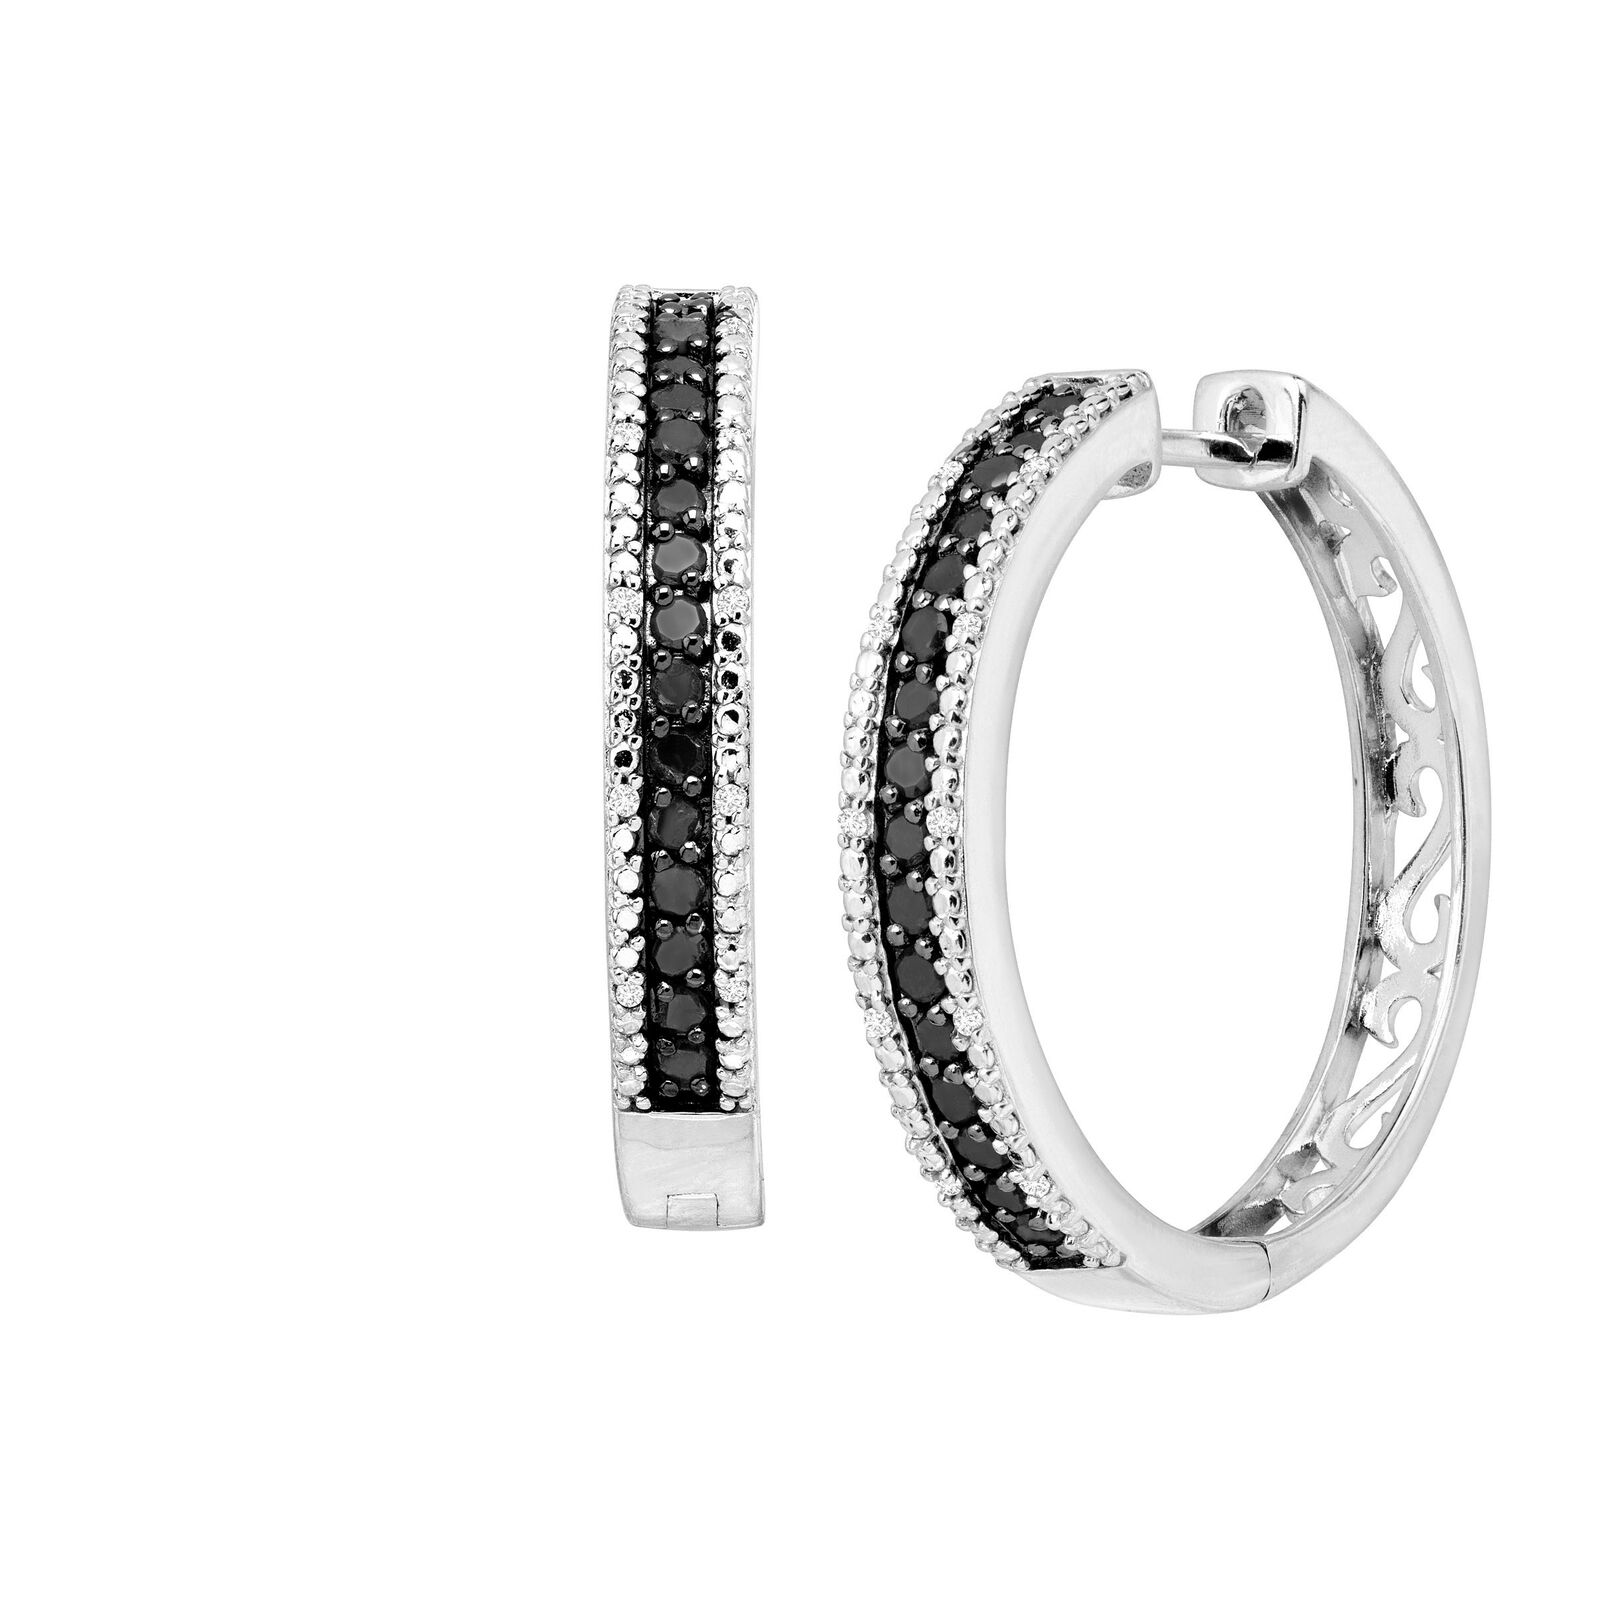 1 ct Black & White Diamond Hoop Earrings in Sterling Silver